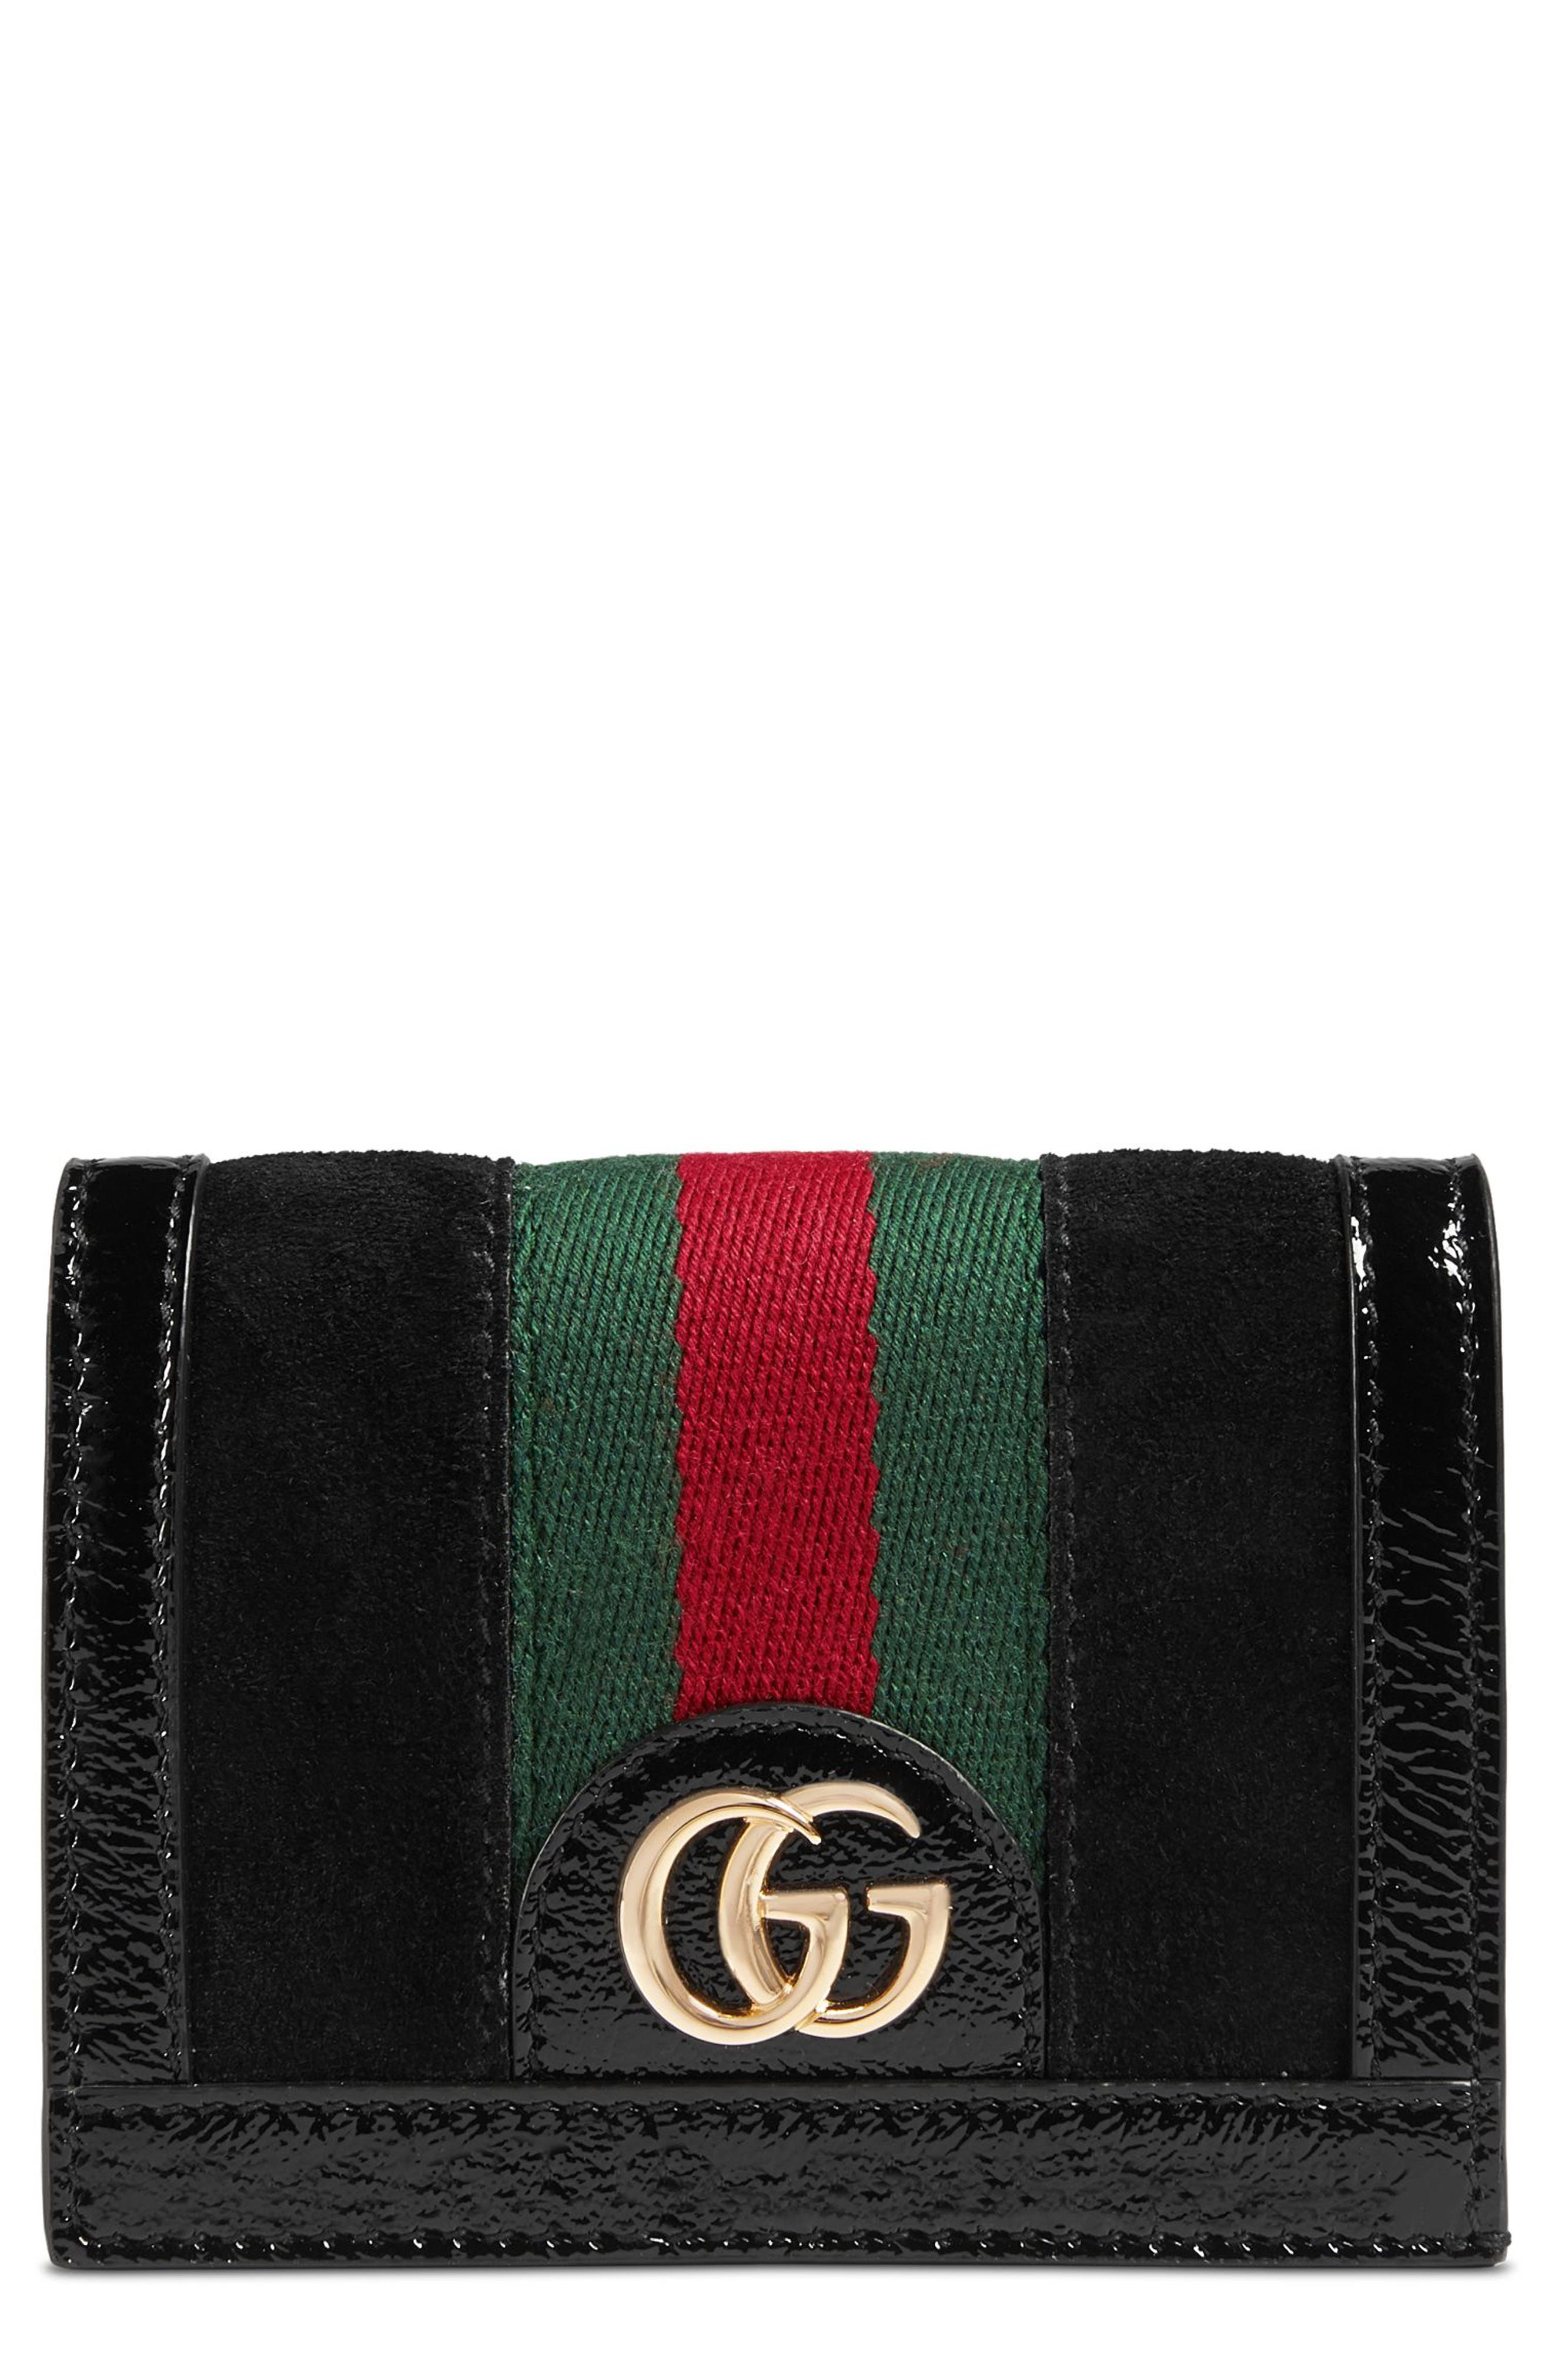 Ophidia Suede Card Case,                             Main thumbnail 1, color,                             NERO/ NERO/ VERT RED VERT